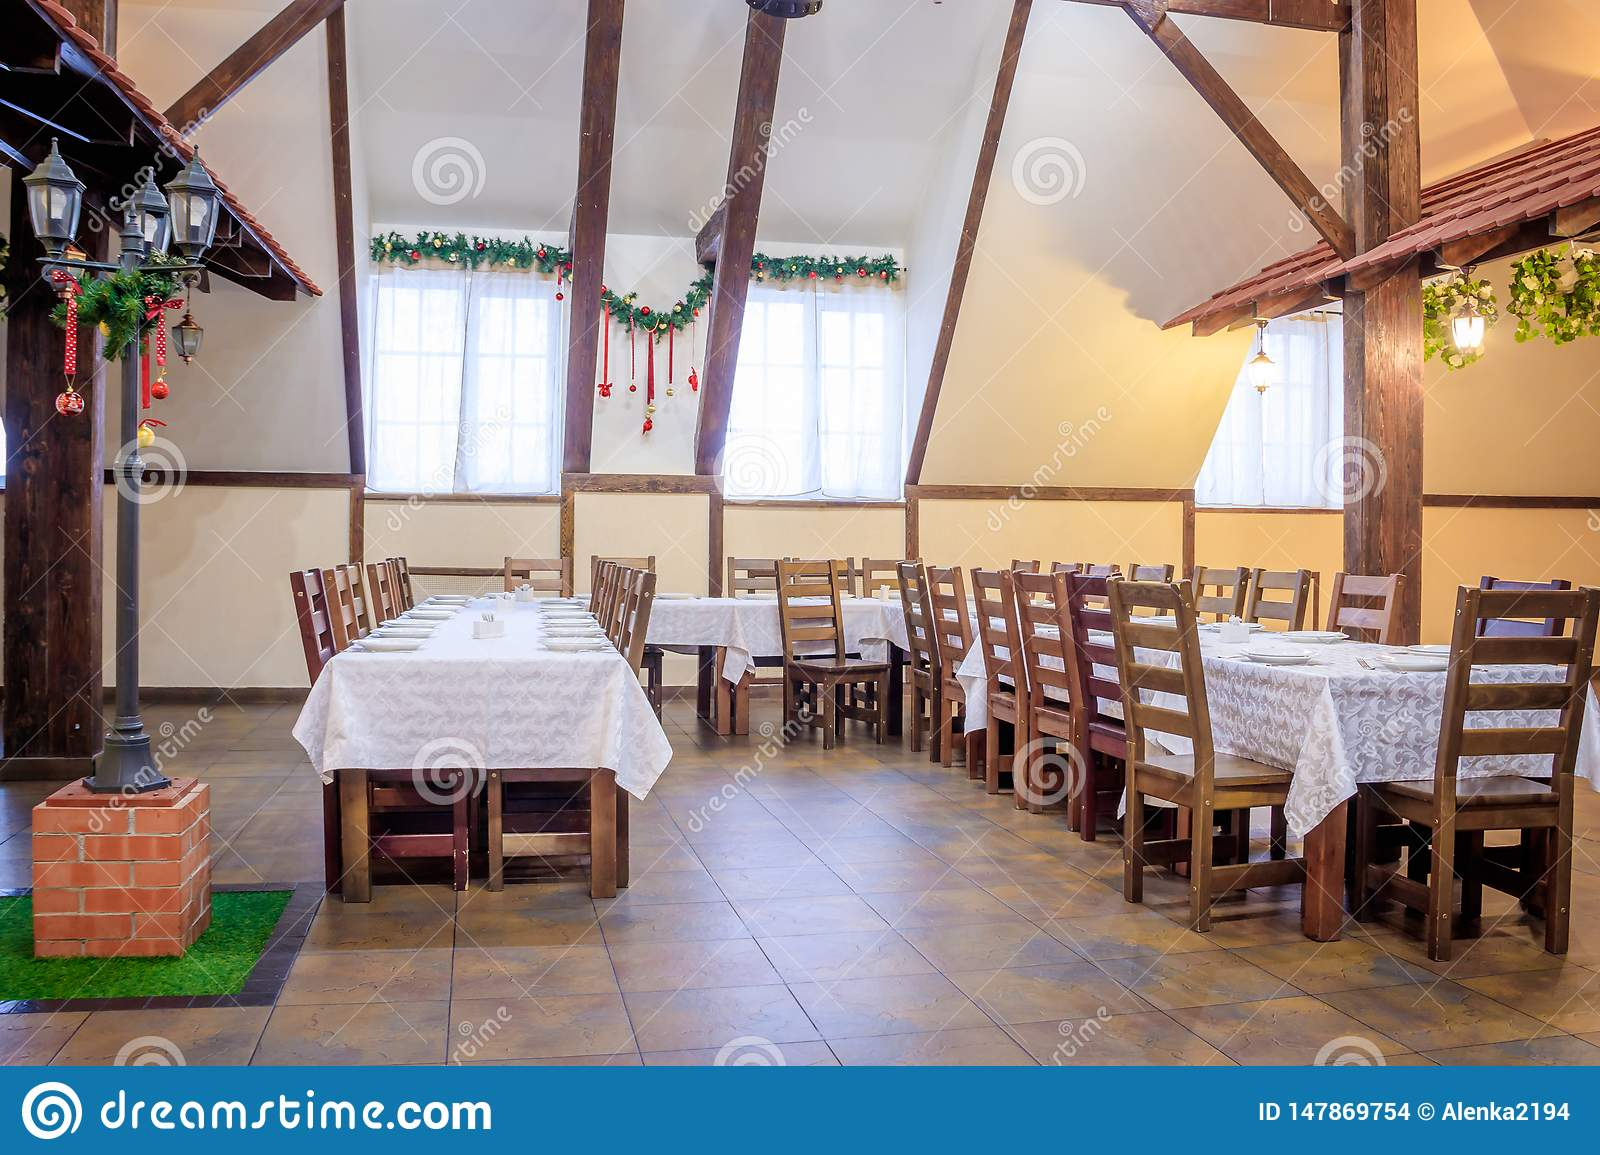 Christmas Decoration Of The Hall In The Restaurant Holiday In The Restaurant New Year S Decor White Scenery The Interior Stock Photo Image Of Happy Hotel 147869754